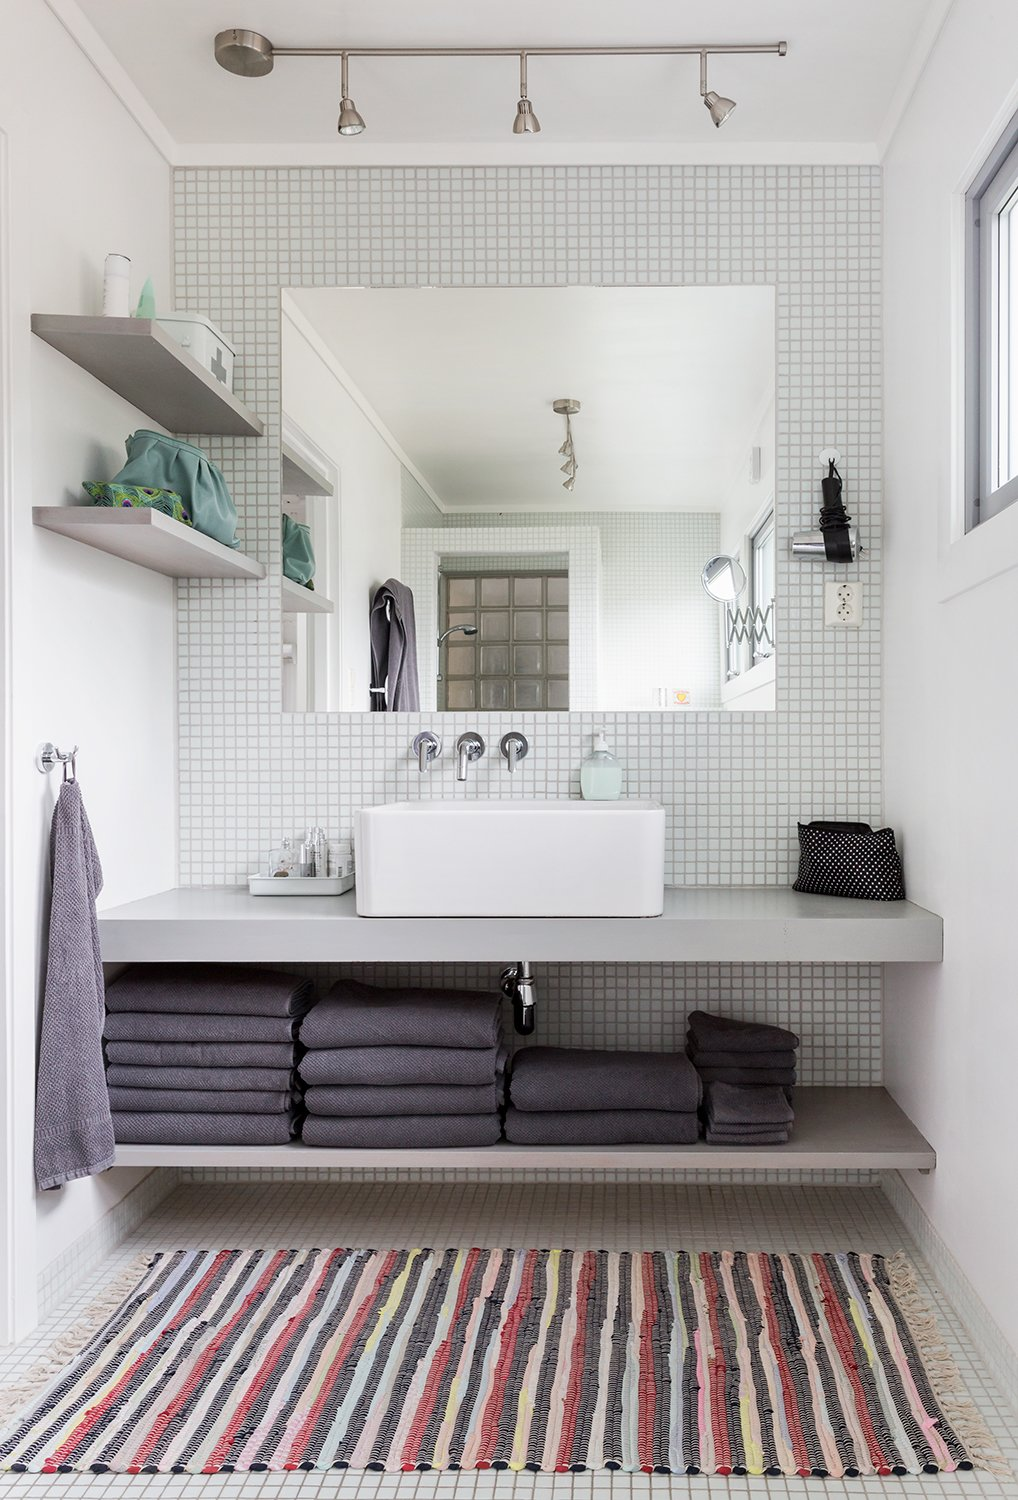 """Bath Room, Vessel Sink, Ceramic Tile Floor, Mosaic Tile Wall, Track Lighting, and Rug Floor Built-in shelves and an unframed mirror give the bathroom vanity a clean and streamlined look.  Photo 12 of 13 in Relax and Recharge at This Charming Norwegian """"Hytte"""" Rental"""